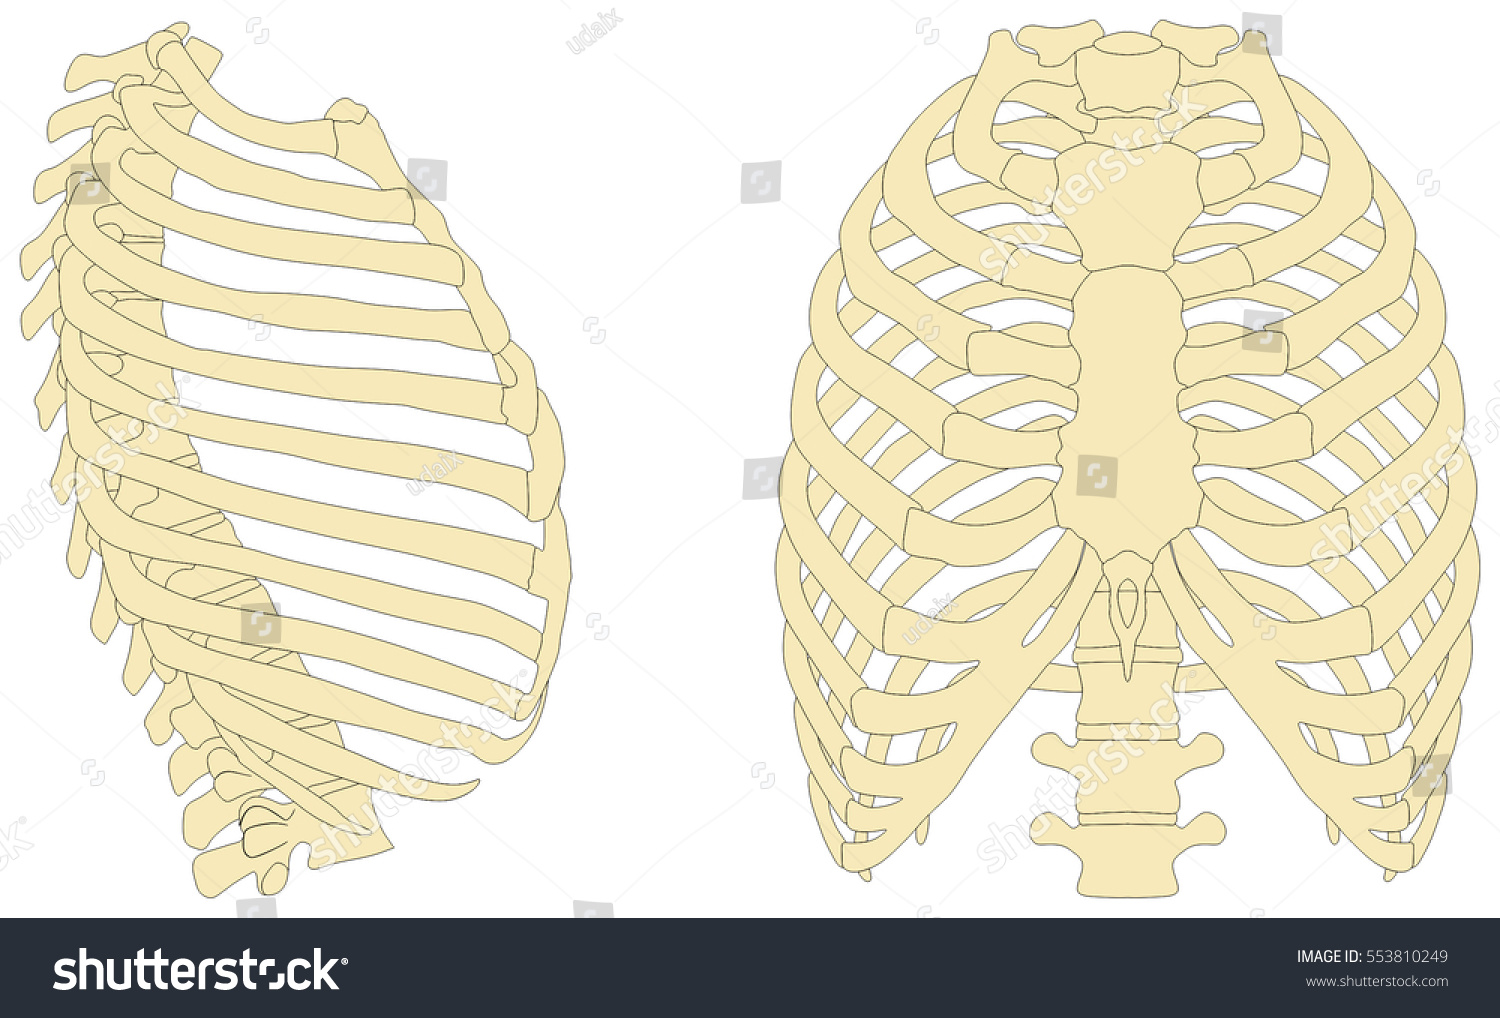 Human Rib Cage Anatomy Anterior Right Stock Illustration 553810249 ...